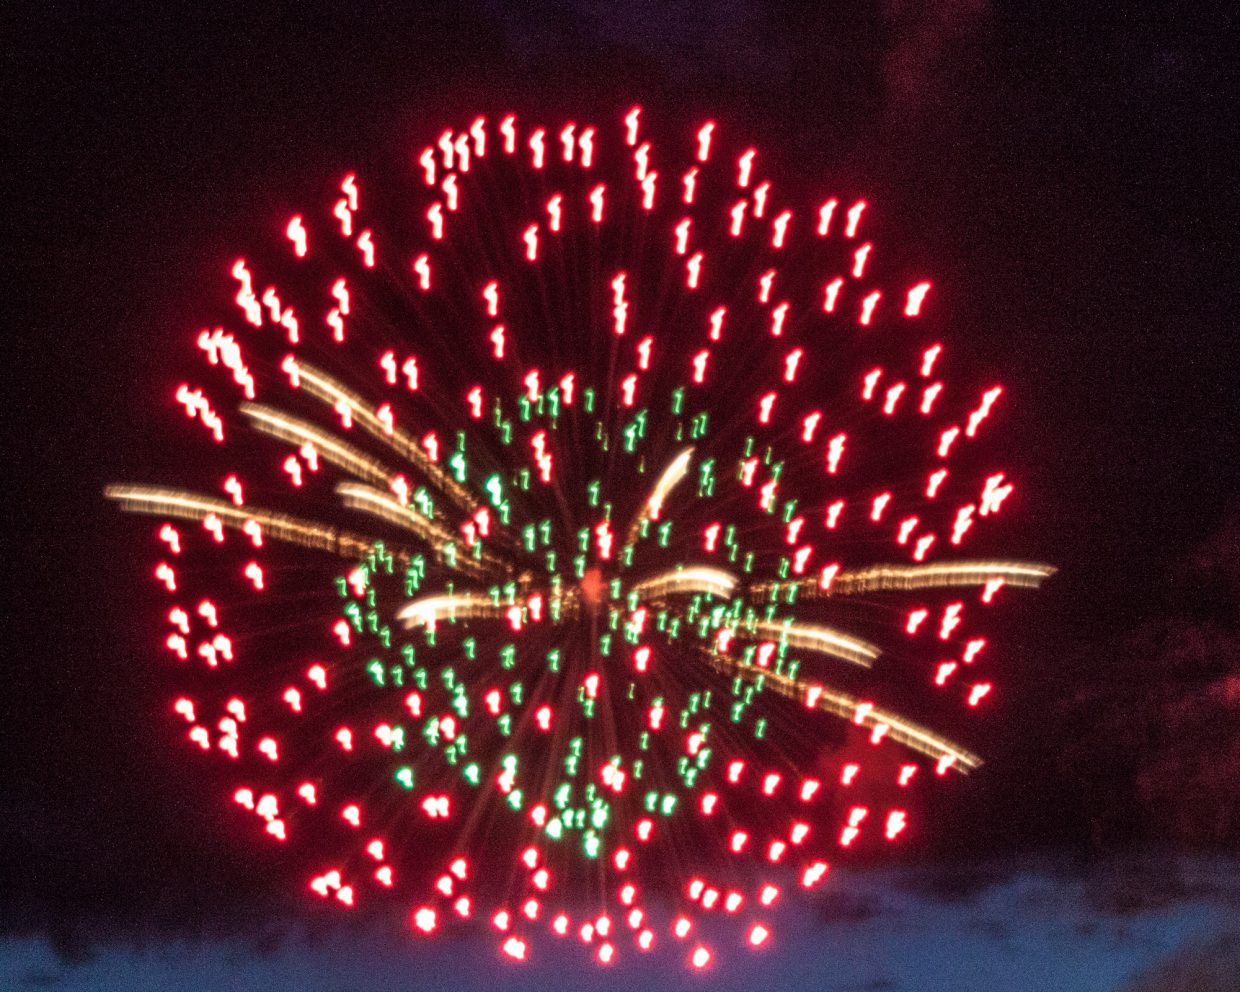 July 4th 2016 Steamboat fireworks. Submitted by G. Fredrick Reynolds.